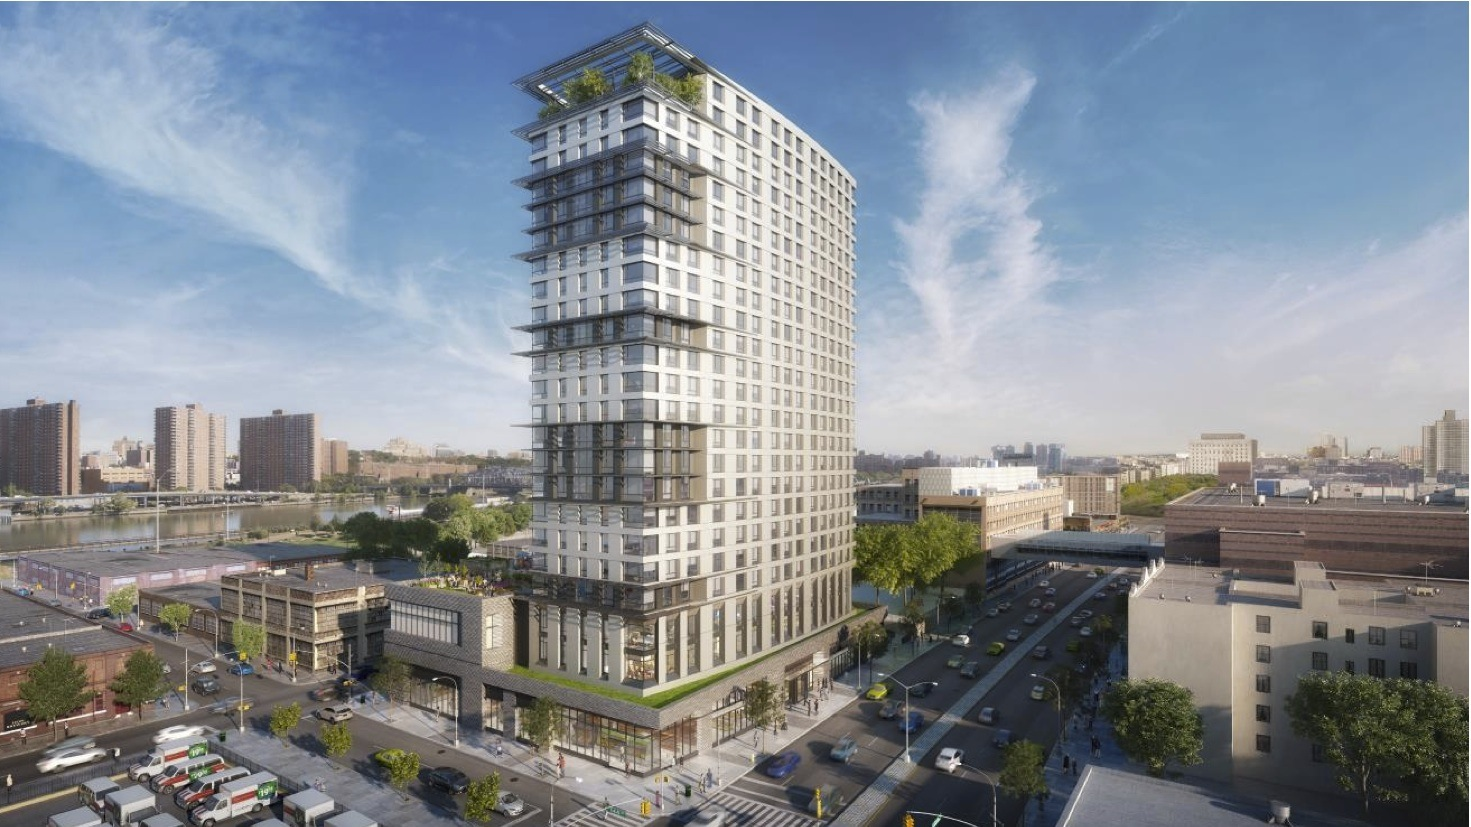 New York City Officials Announce Largest Residential